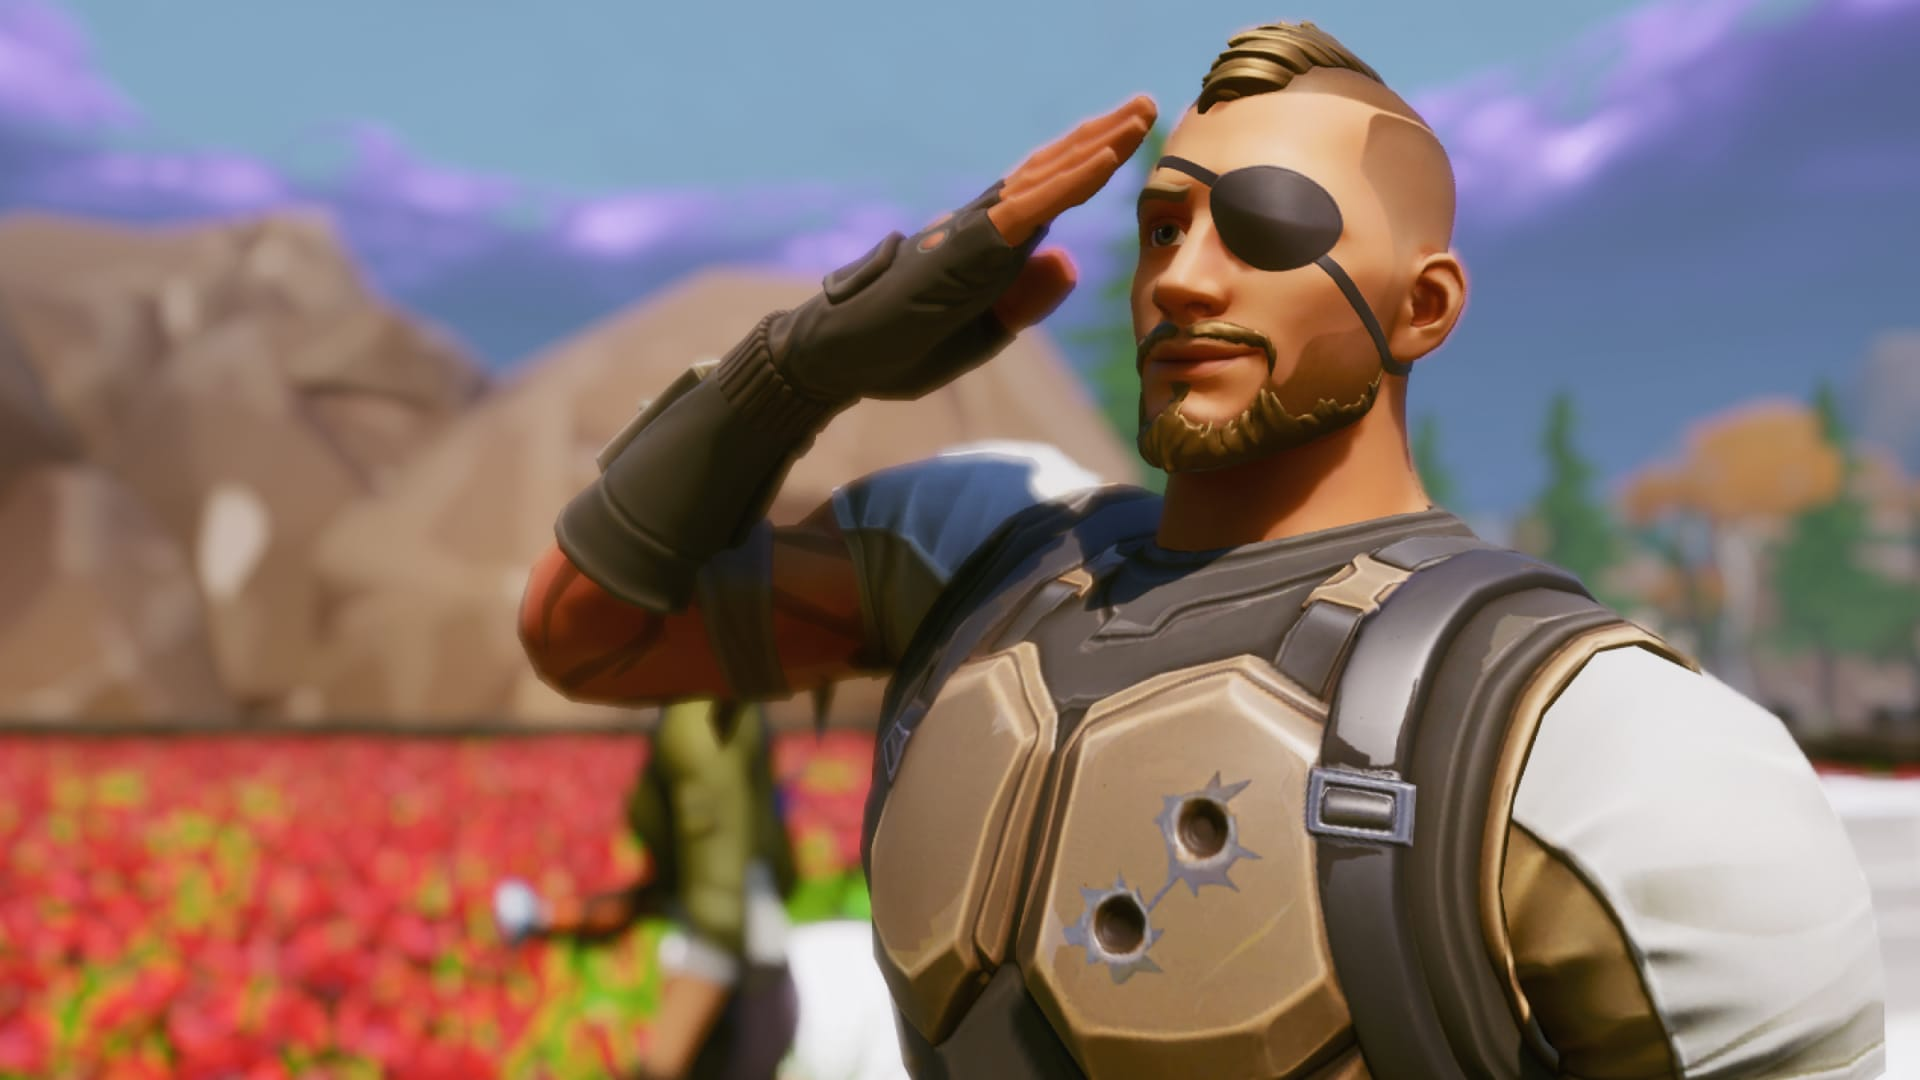 Animated solider with eye patch saluting in front of a field of blurred out poppies.